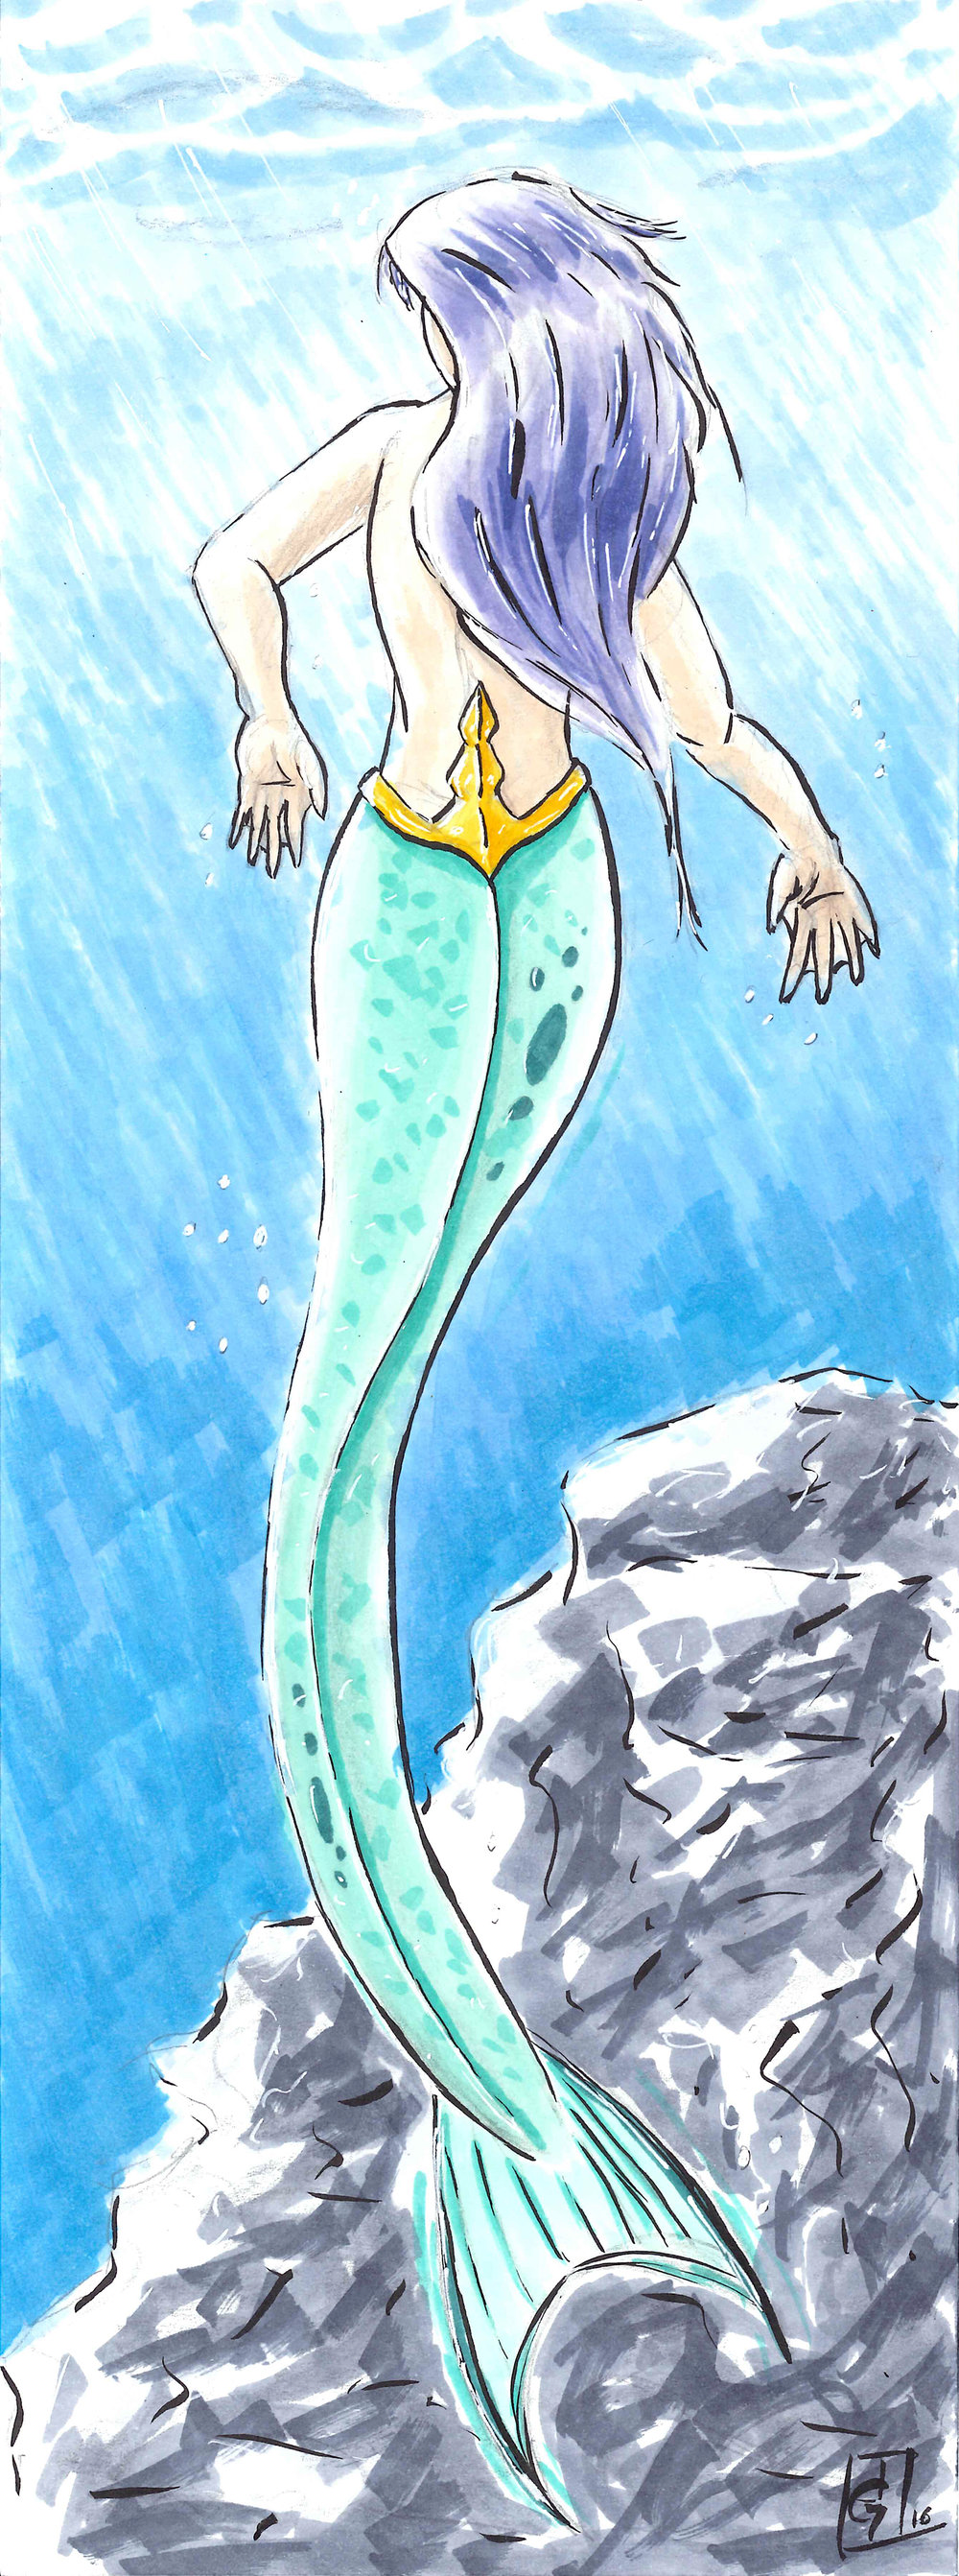 Surfacing Mermaid